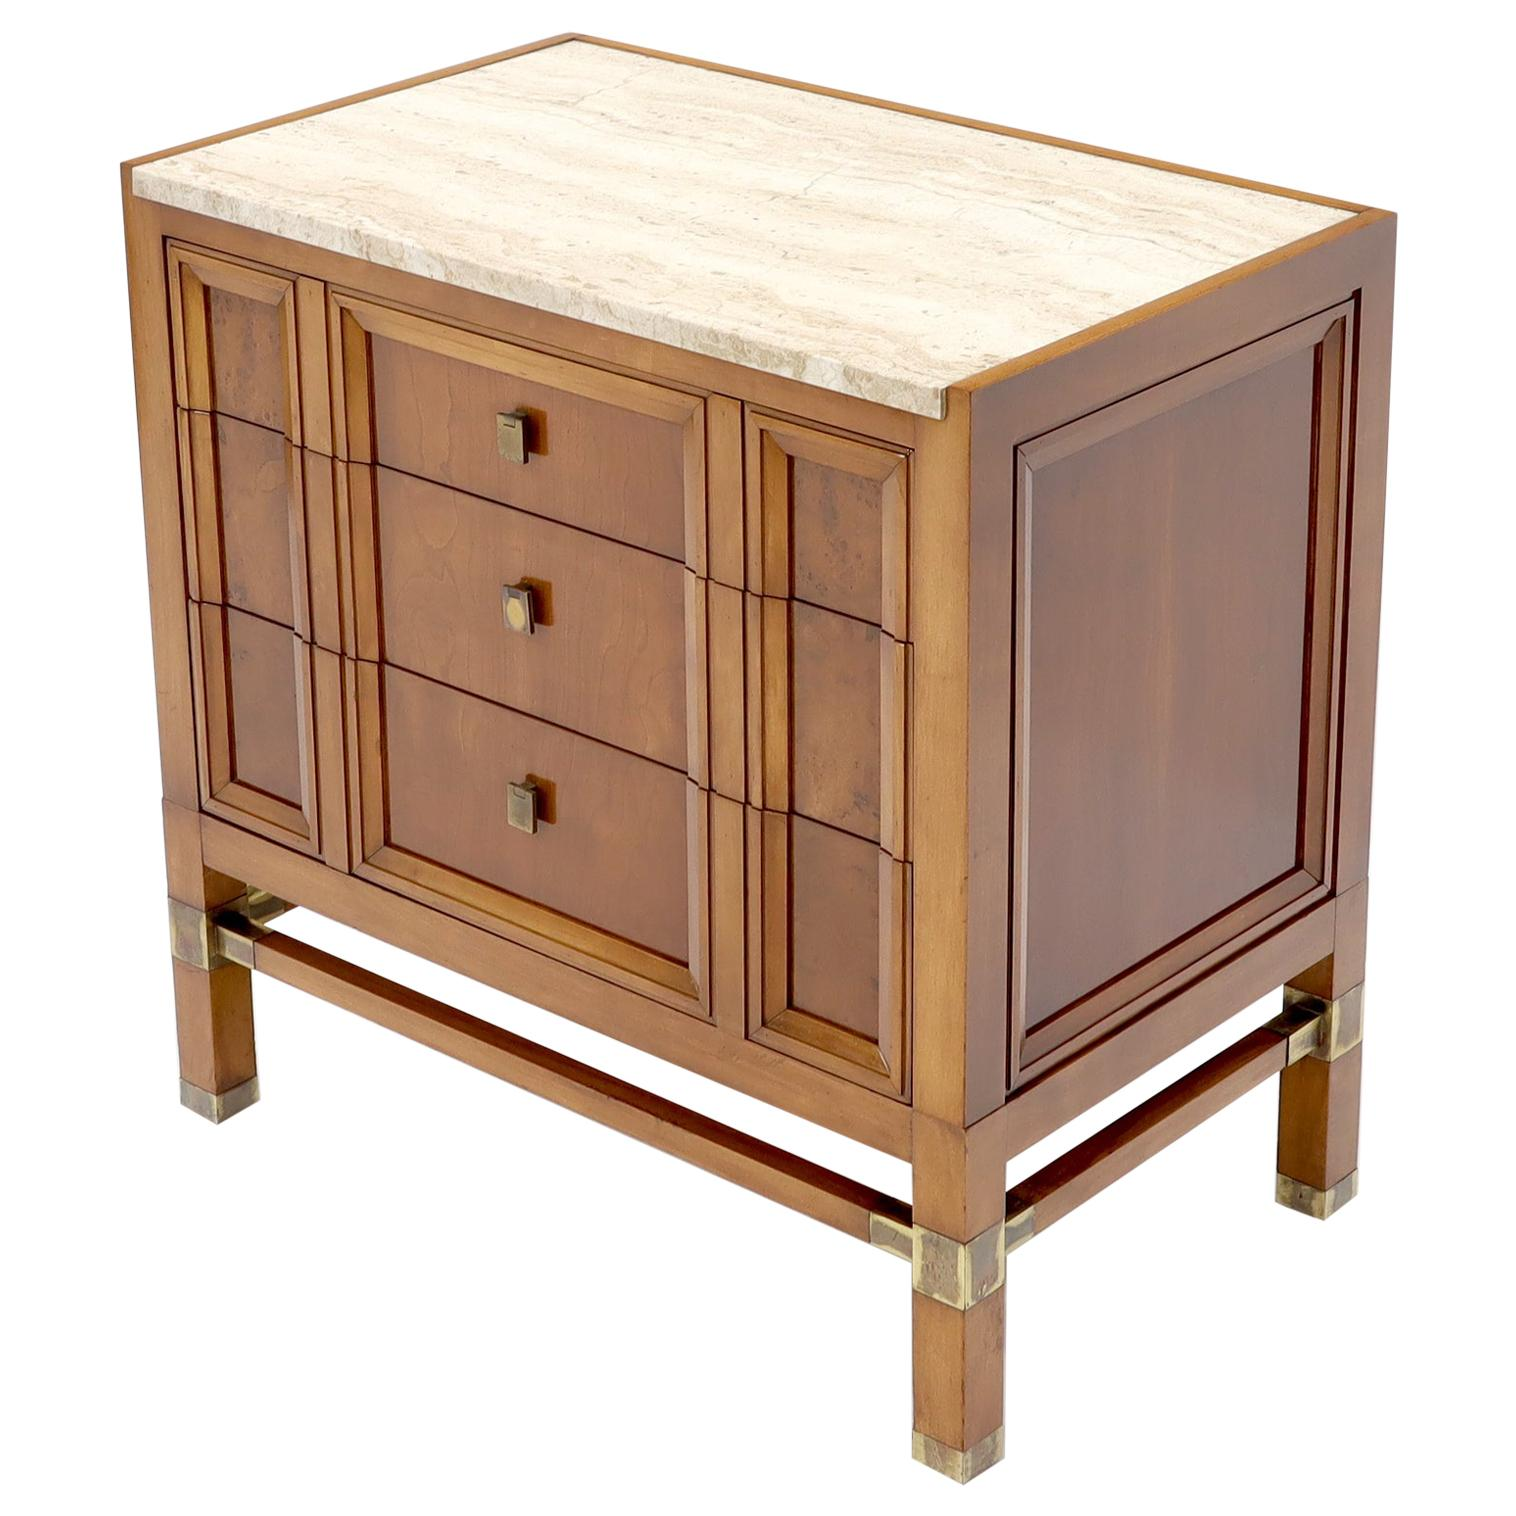 Travertine Top Three Drawers Bachelors Chest with Brass Pulls and Accents